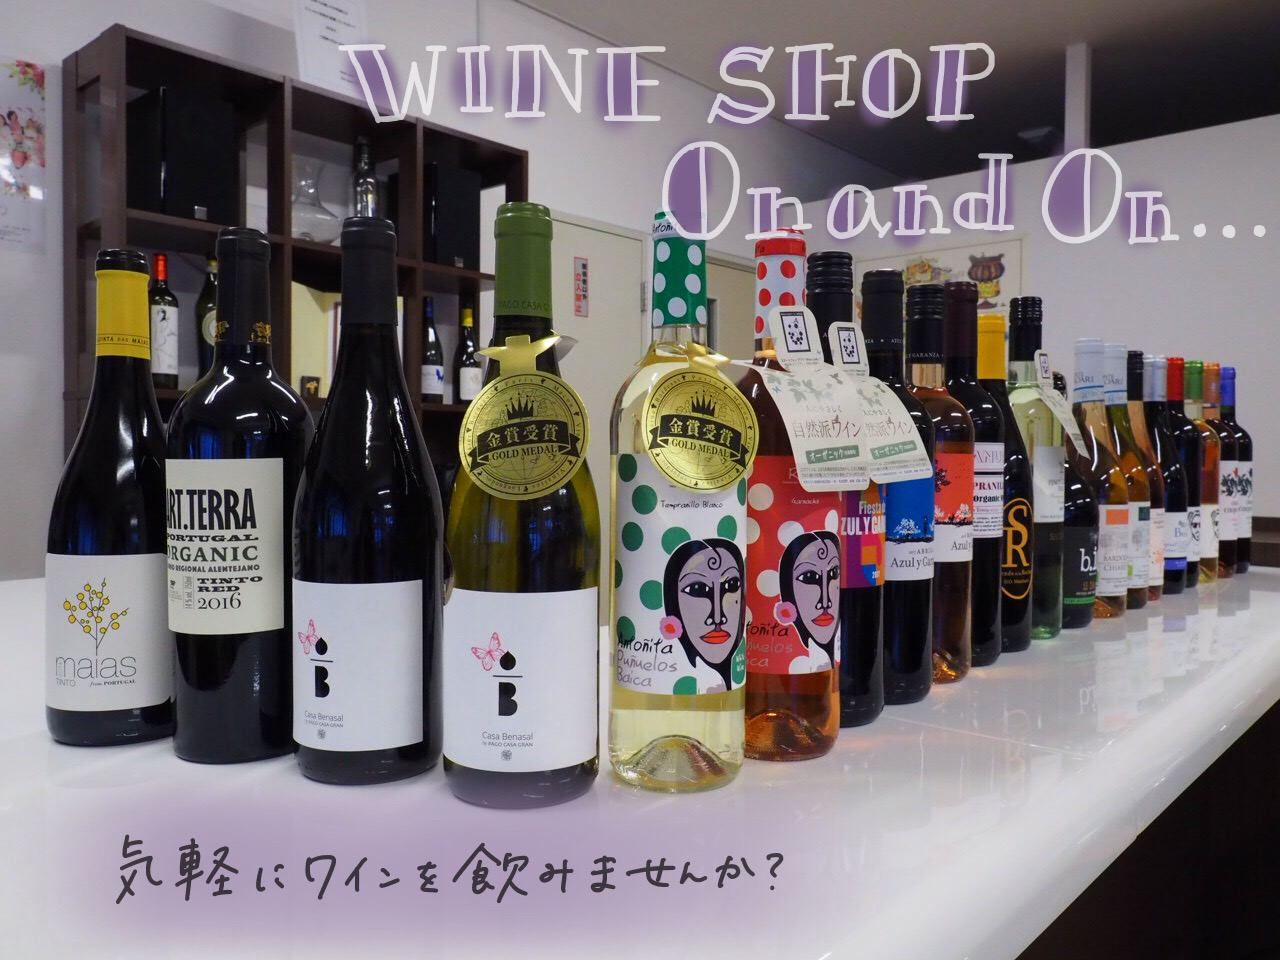 WINE SHOP On and On